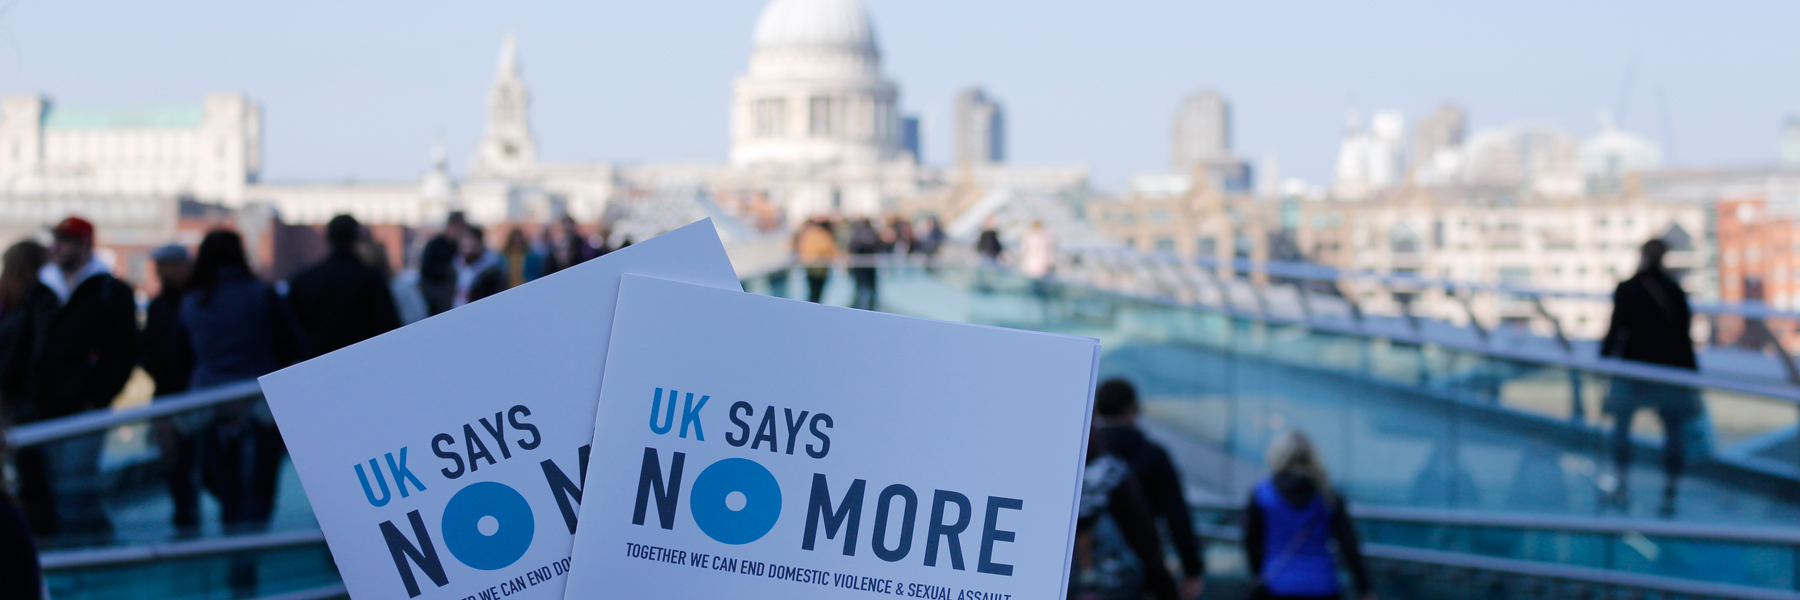 What is UK SAYS NO MORE?